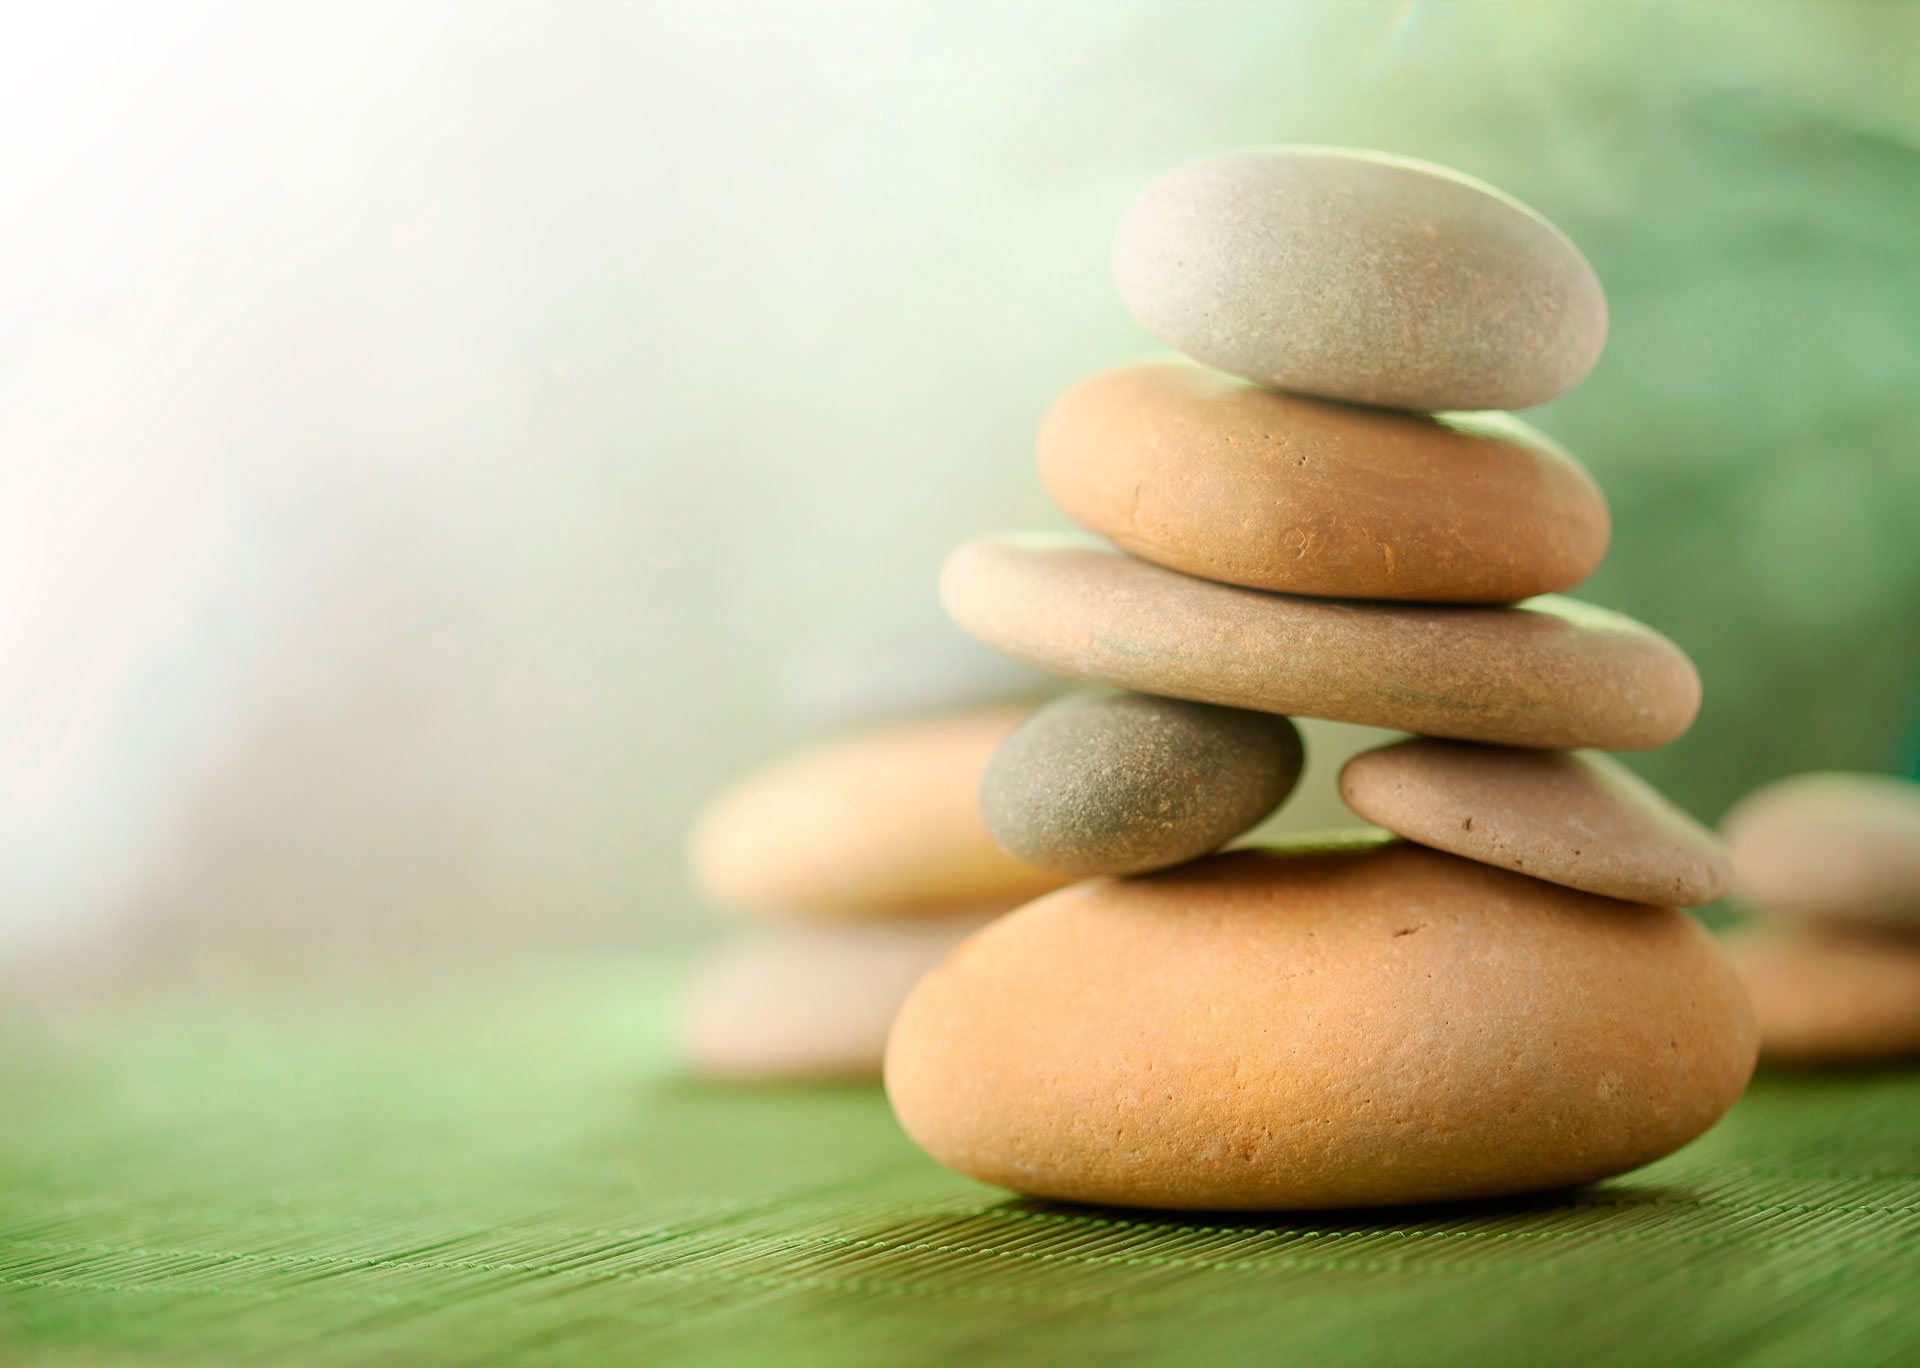 stacked-stones-on-mat-retreats_web